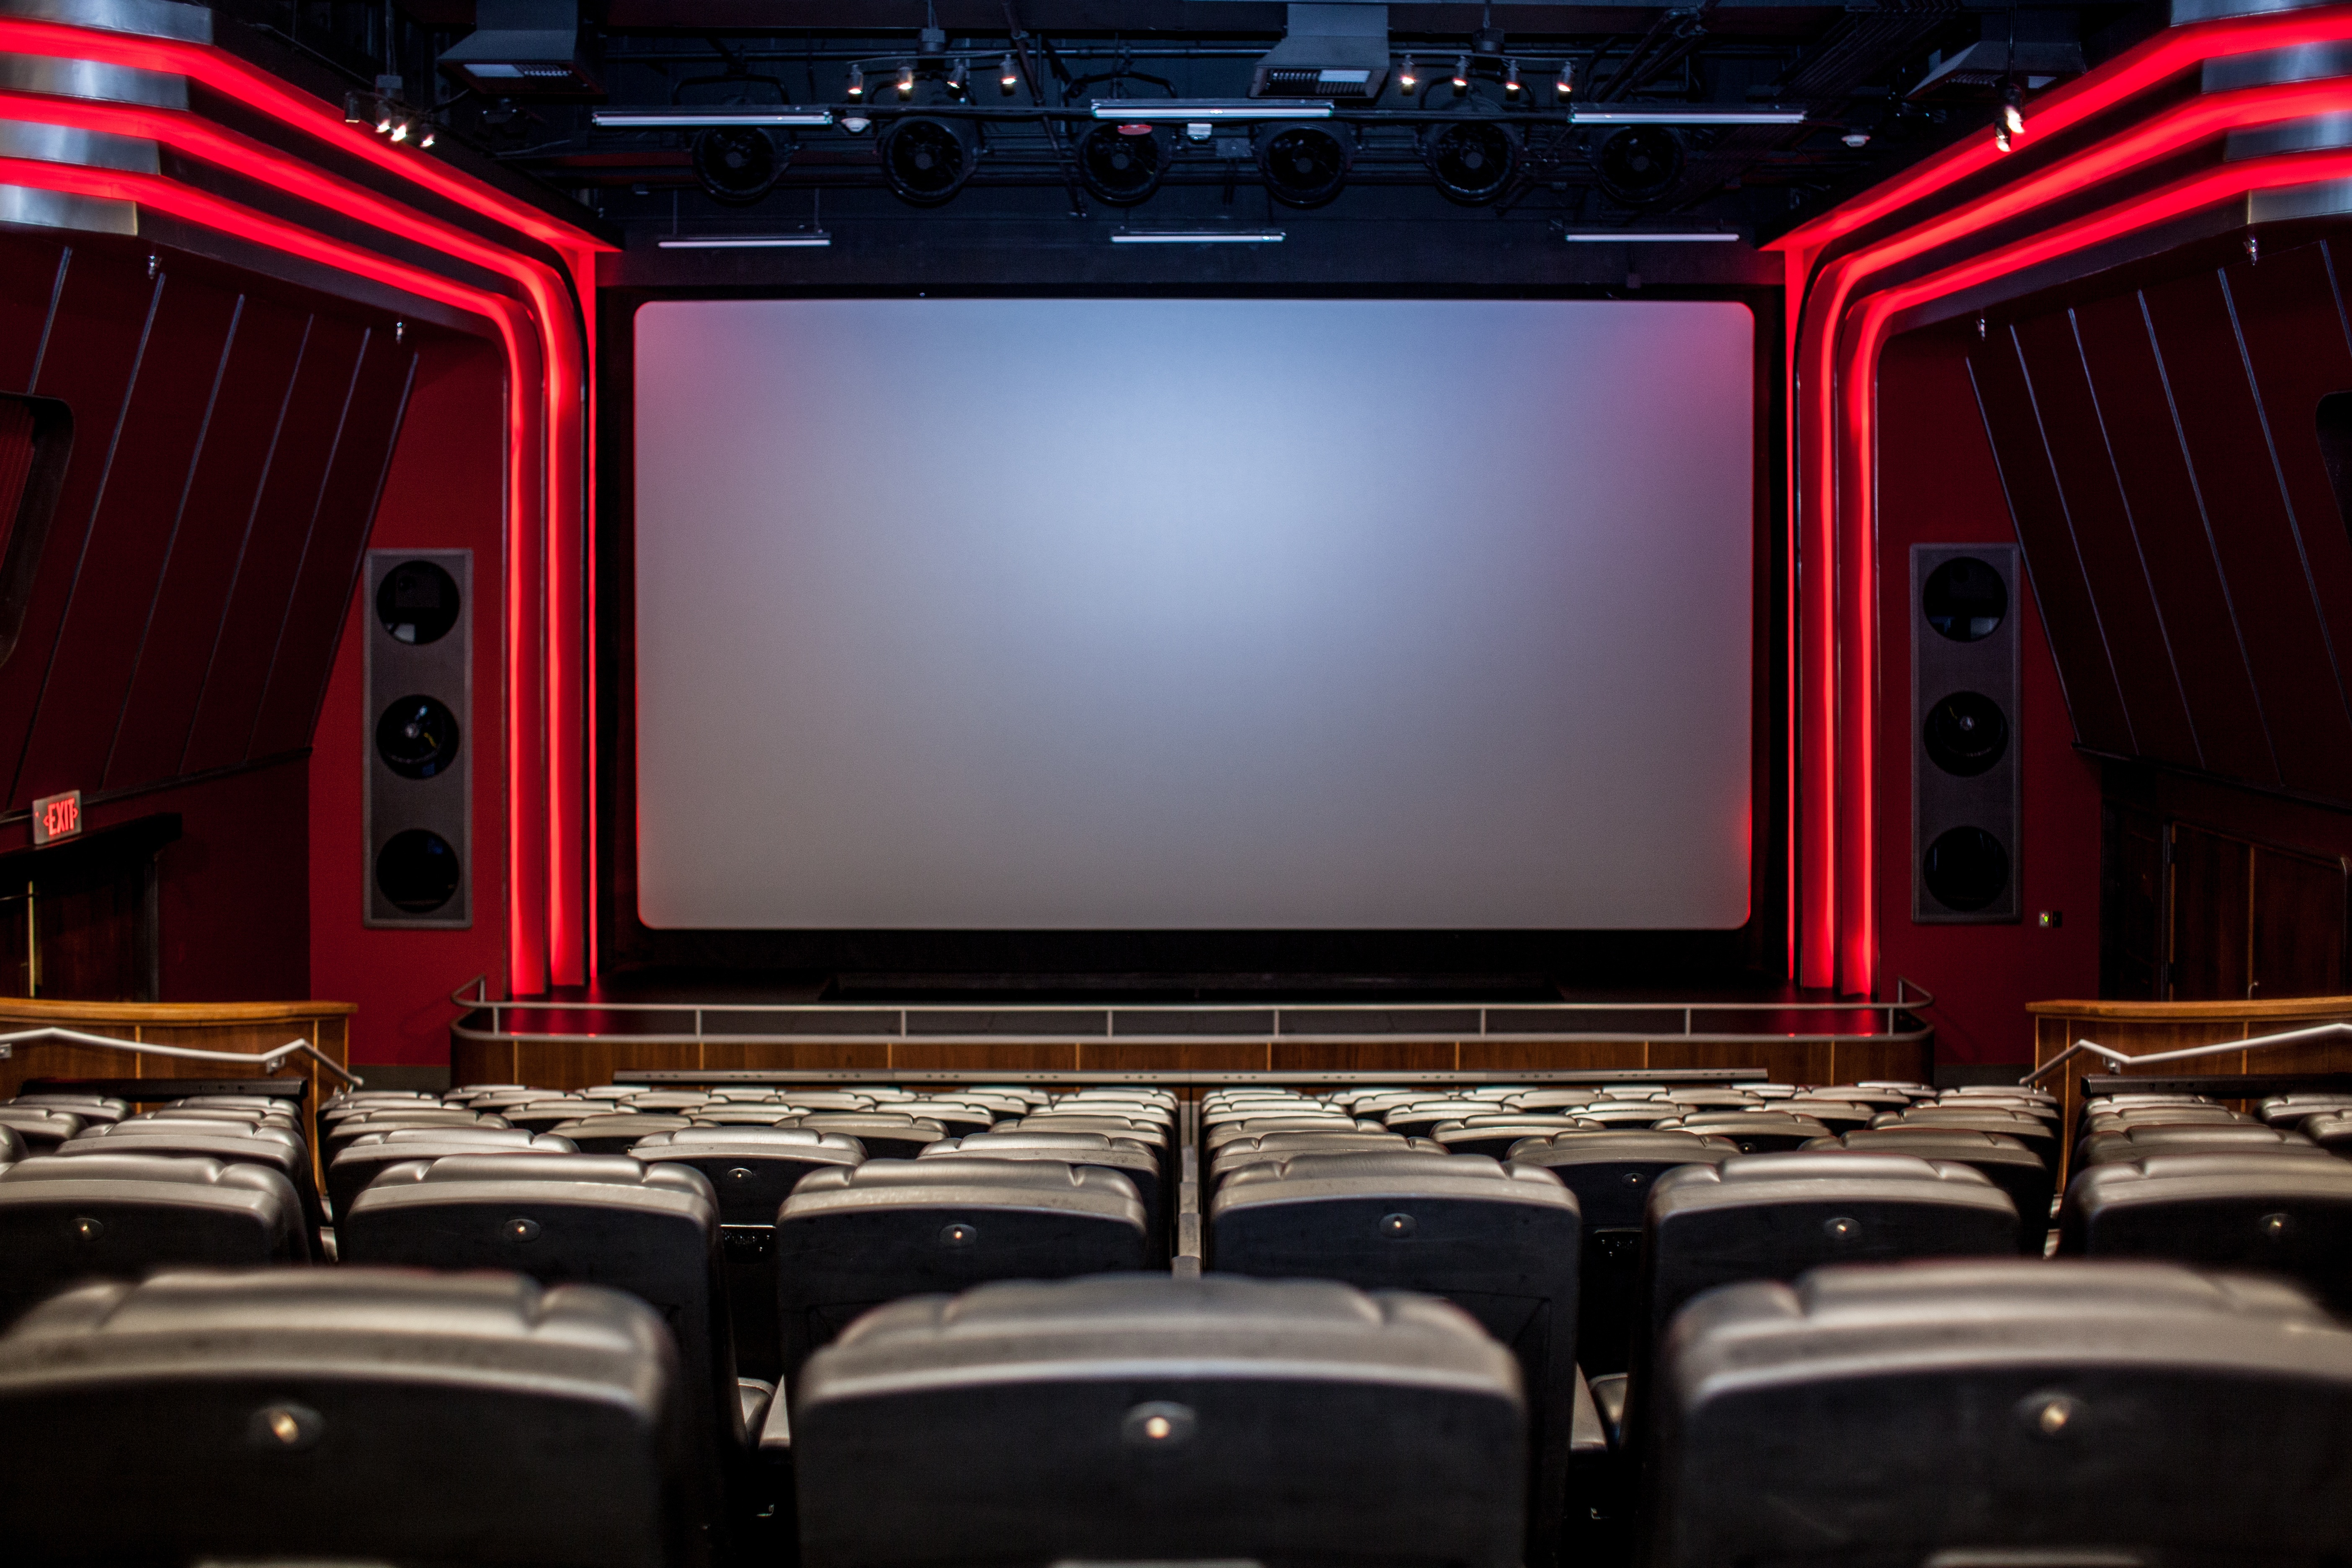 QM 4D Theater - Looking at Screen Straight On